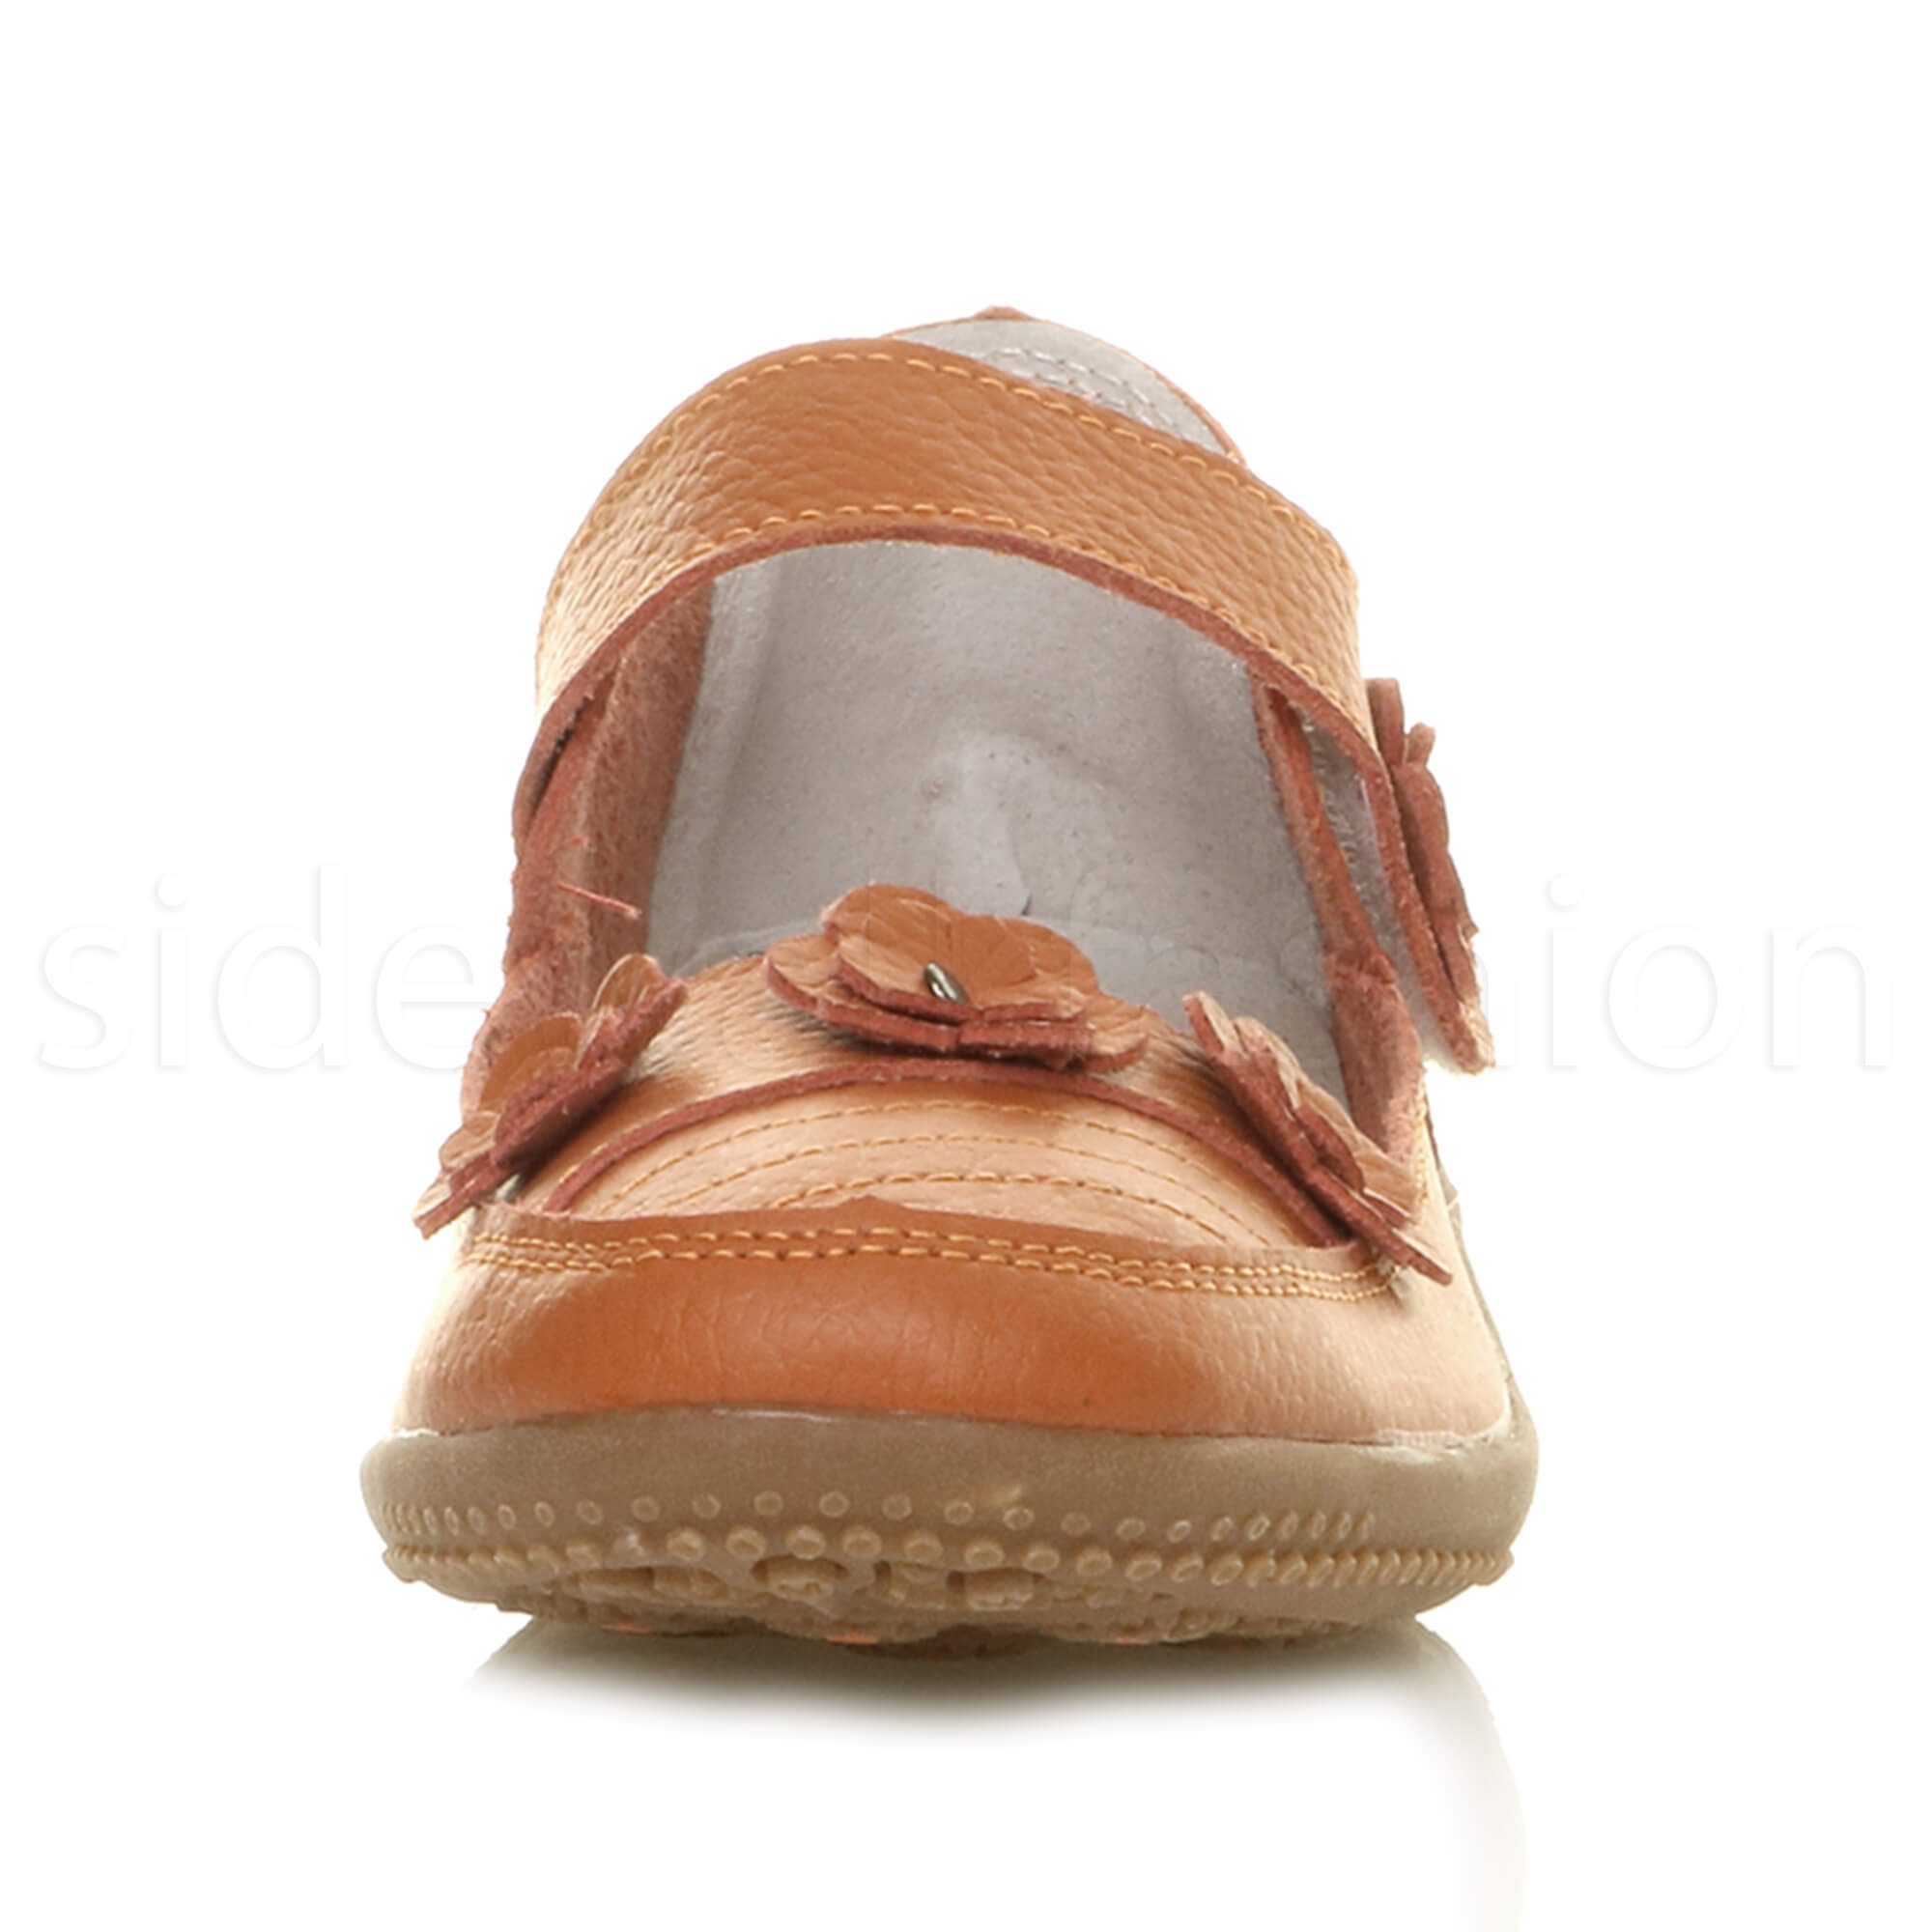 Womens-ladies-leather-comfort-walking-casual-sandals-mary-jane-strap-shoes-size thumbnail 16